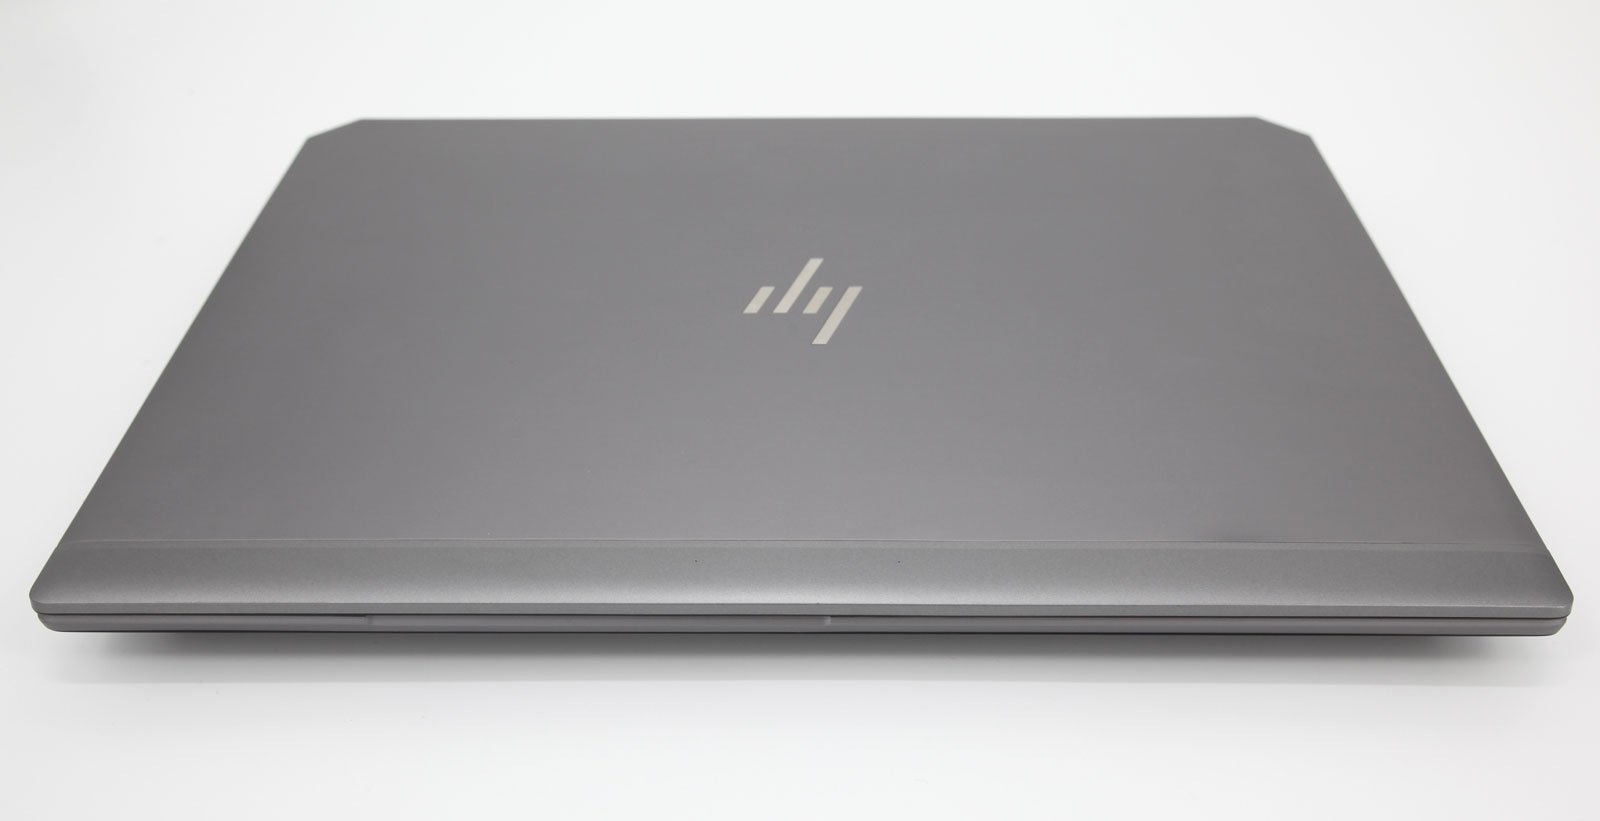 HP ZBook 15 G5 Laptop: 32GB RAM, 512GB, Core i7-8750H, P2000, Warranty VAT - CruiseTech